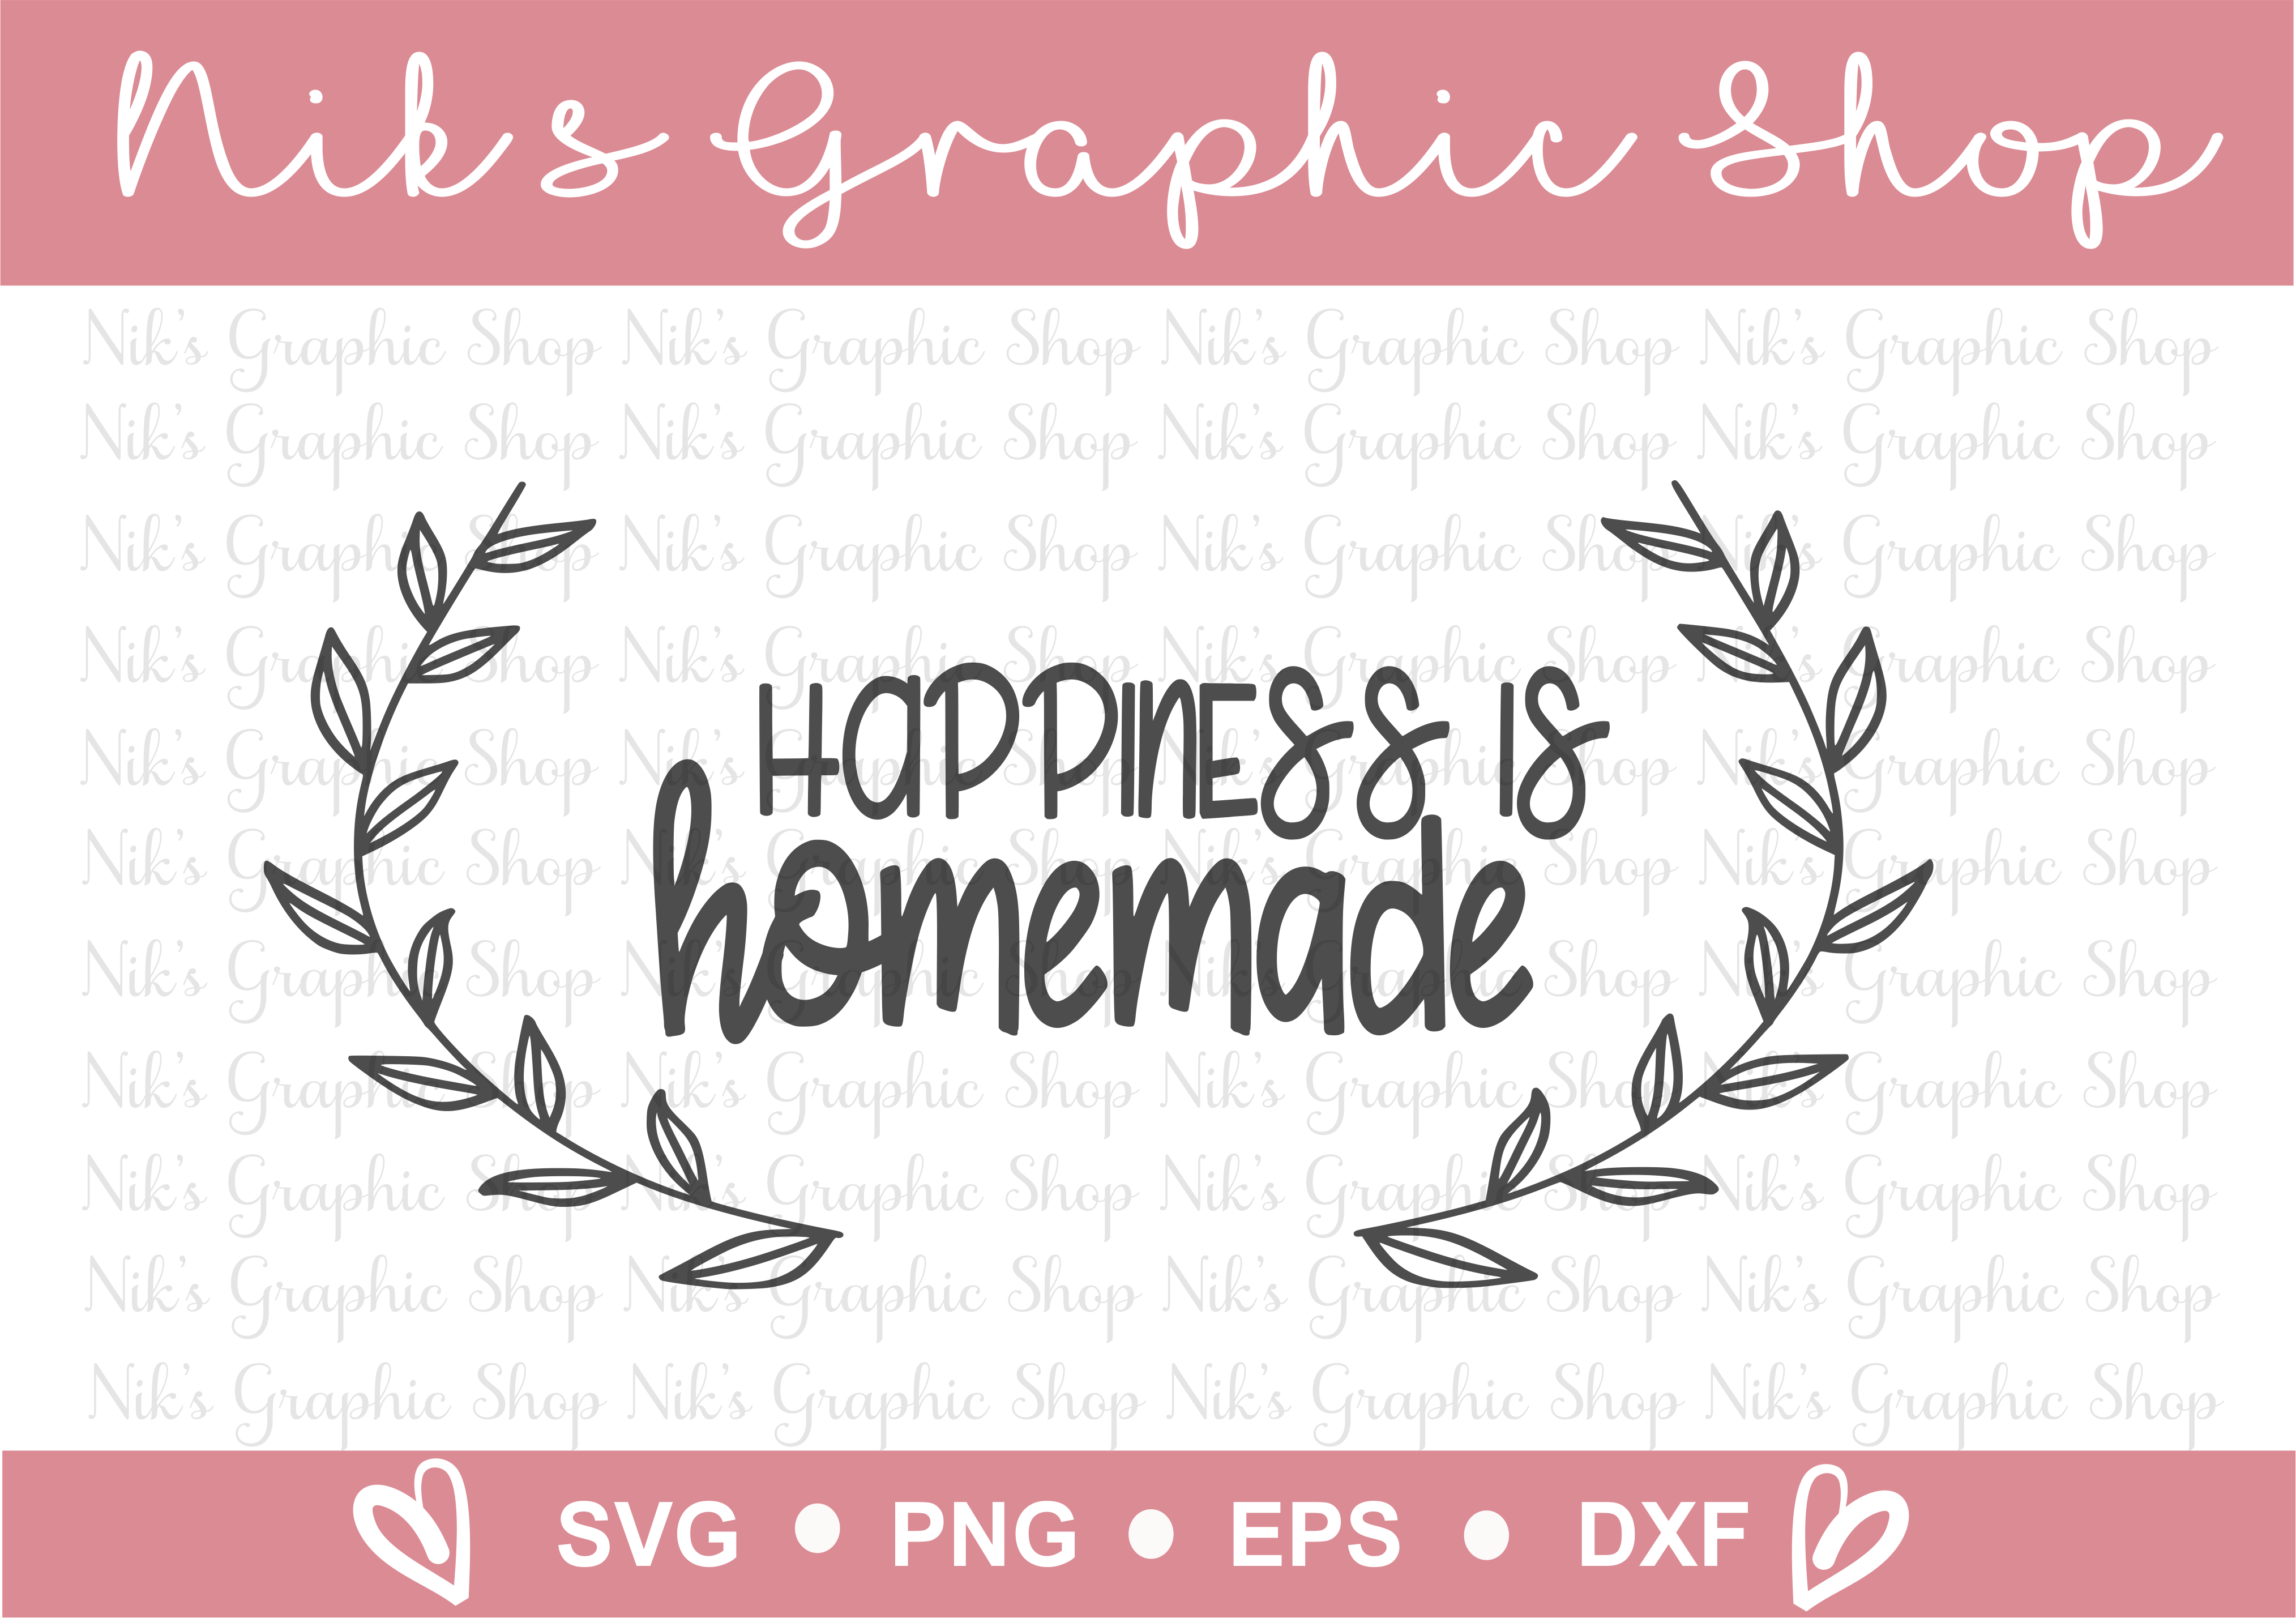 Farm Svgs, Farmers Svgs, Farmers Daughter Svg, Farm sweet example image 11